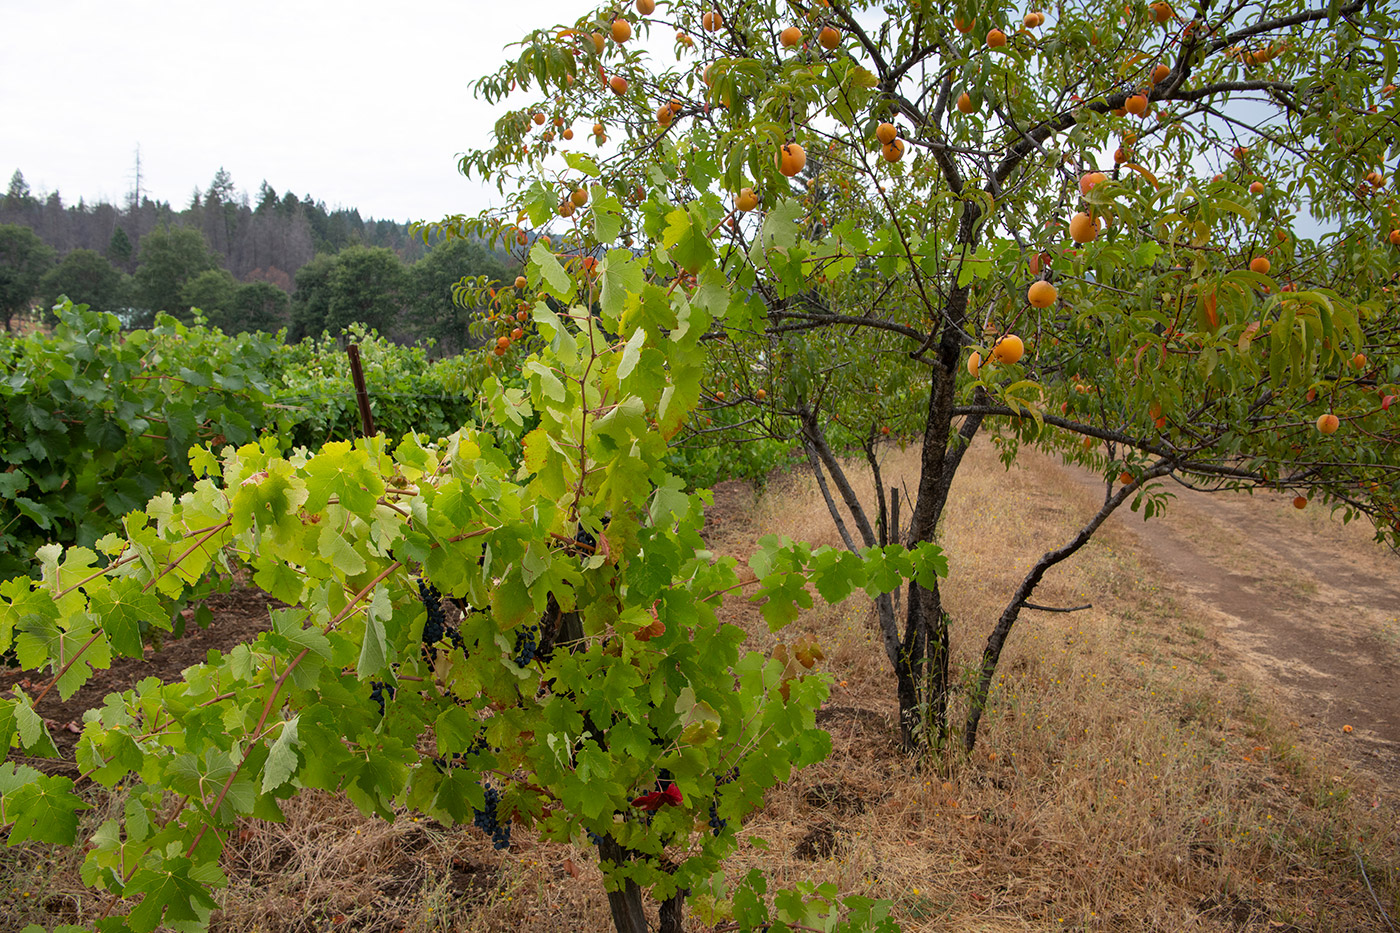 Peach tree in the vineyard